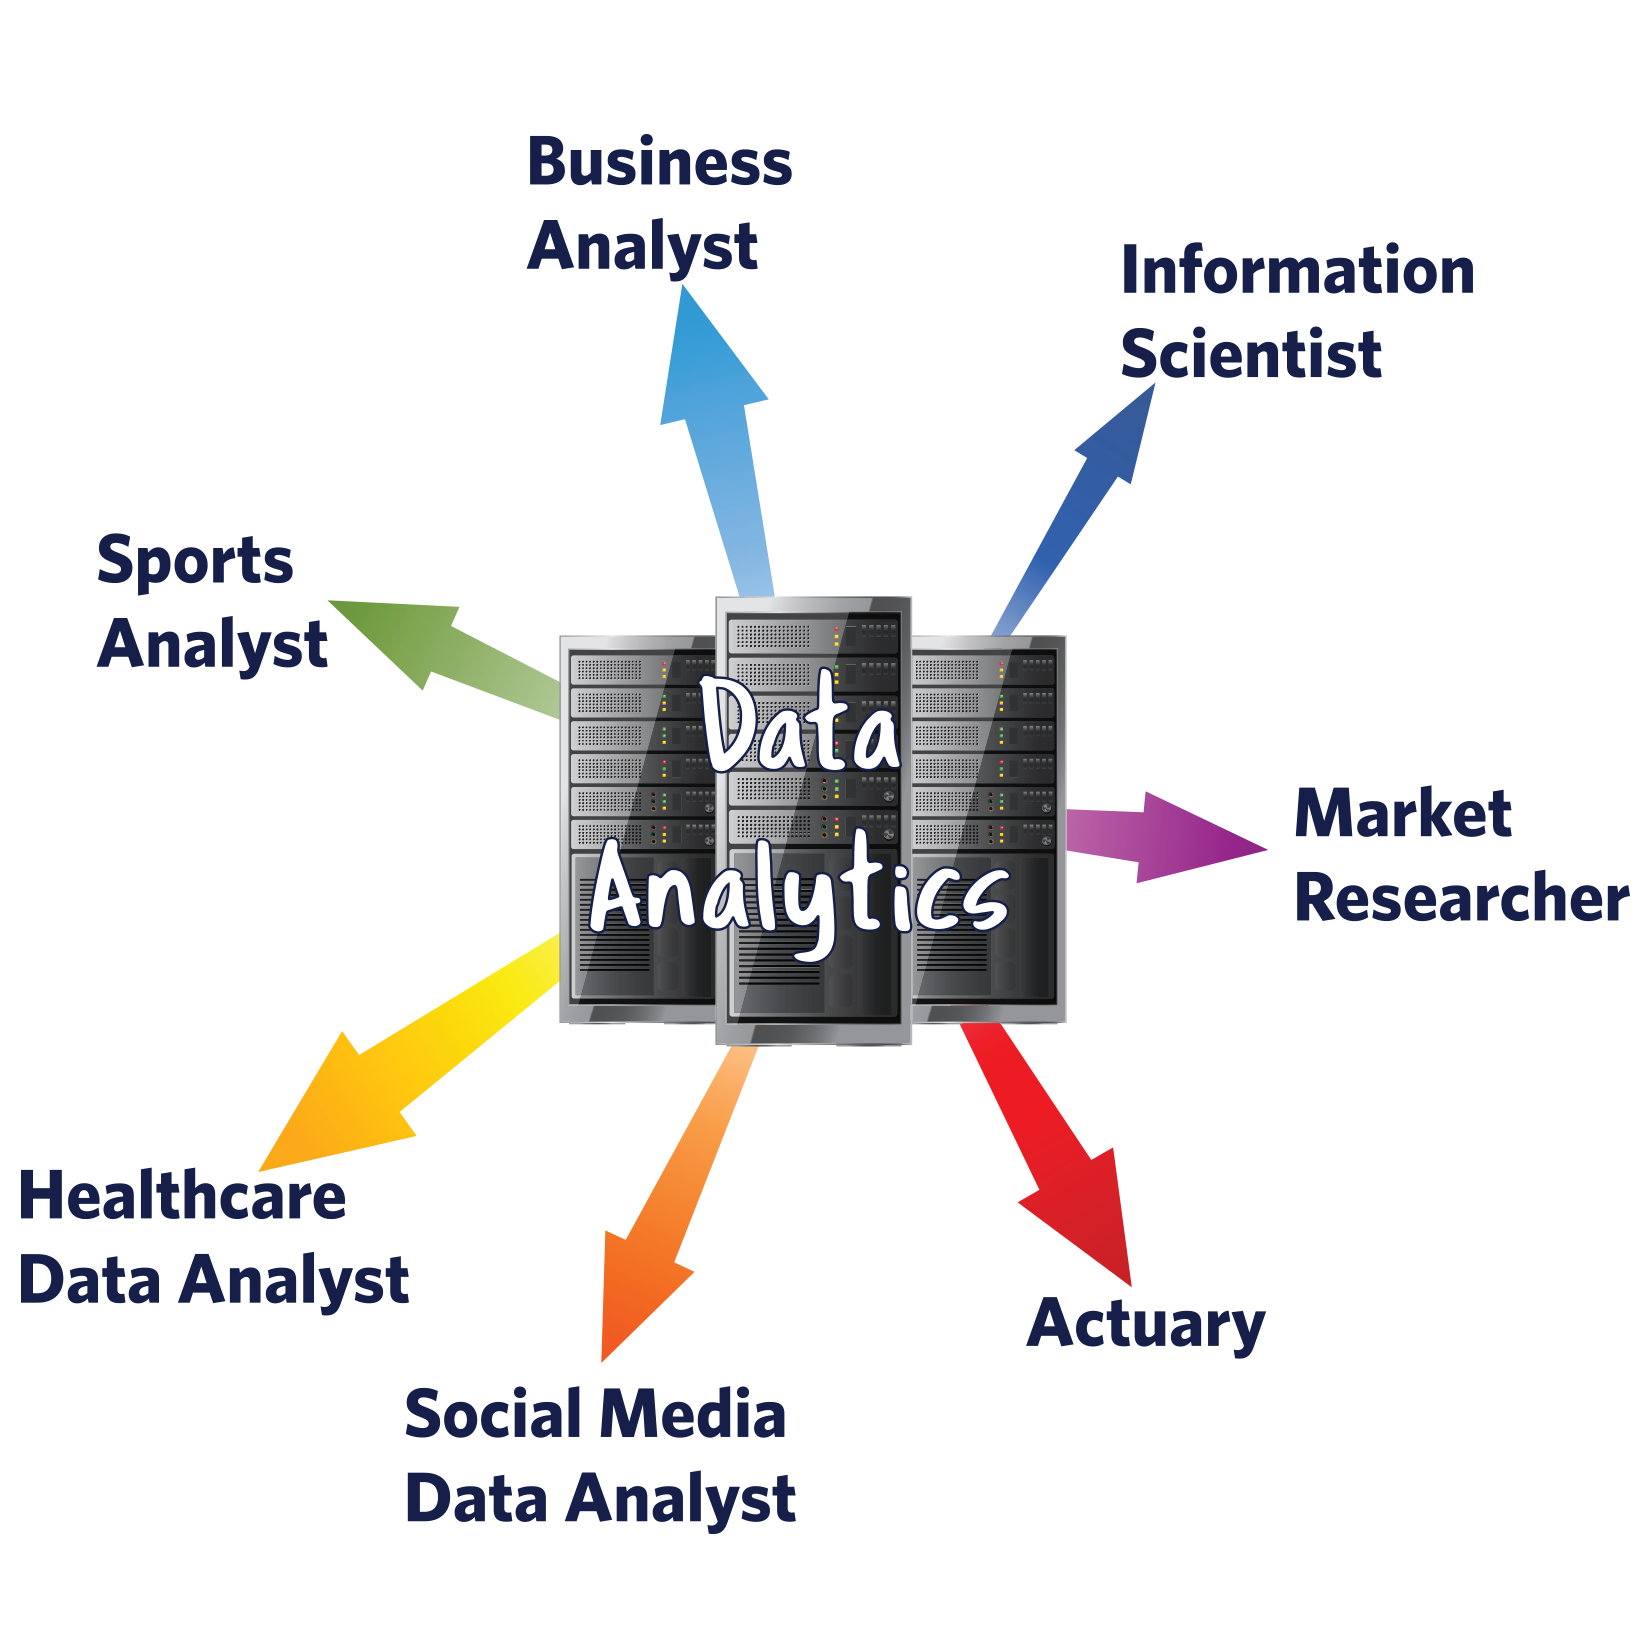 New Data Analytics Major at Thiel College